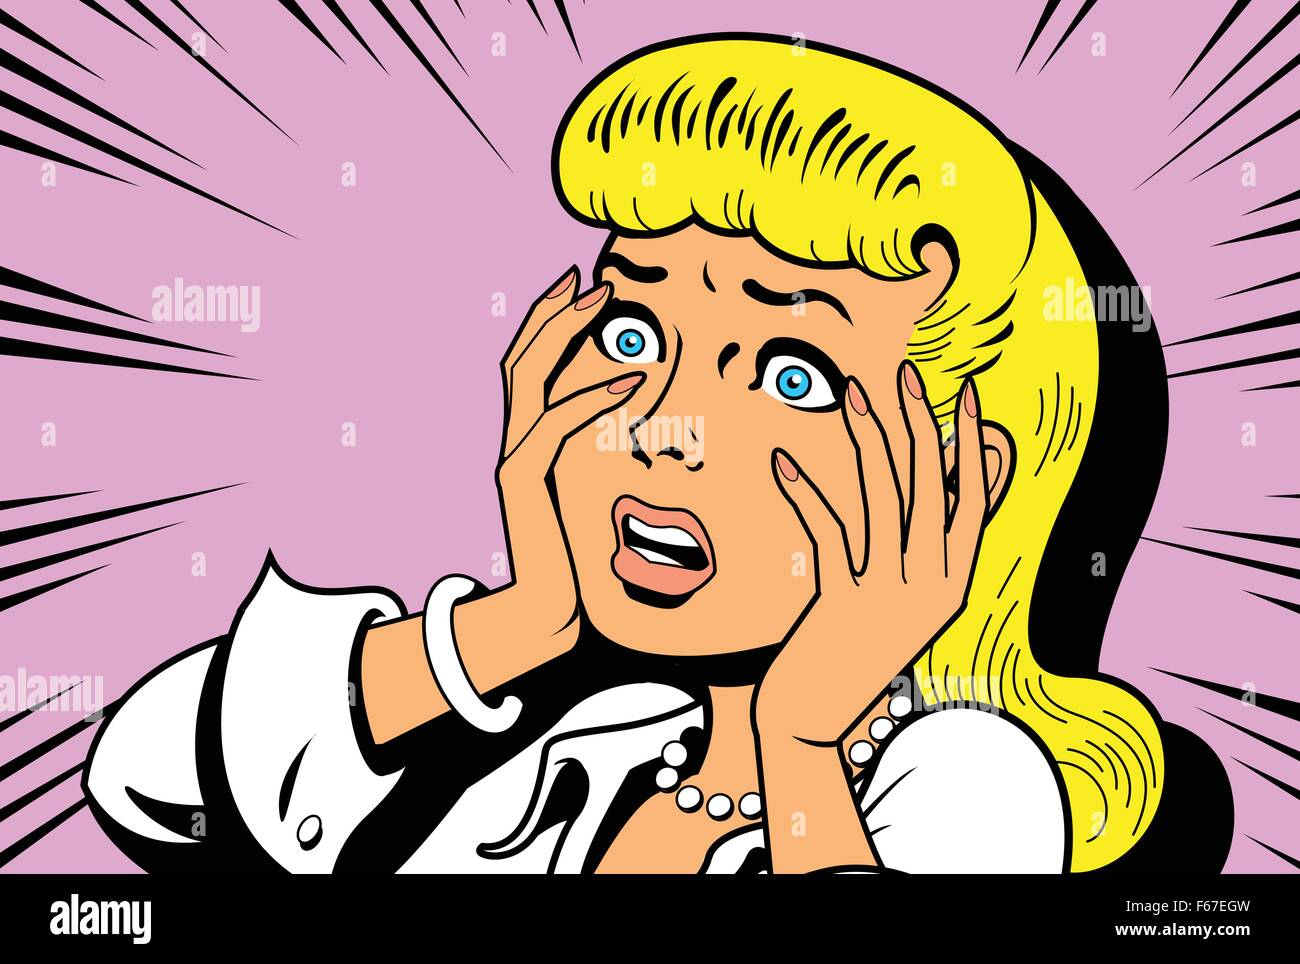 Ironic Satirical Illustration of a Retro Classic Comics Woman Being a Drama Queen - Stock Image